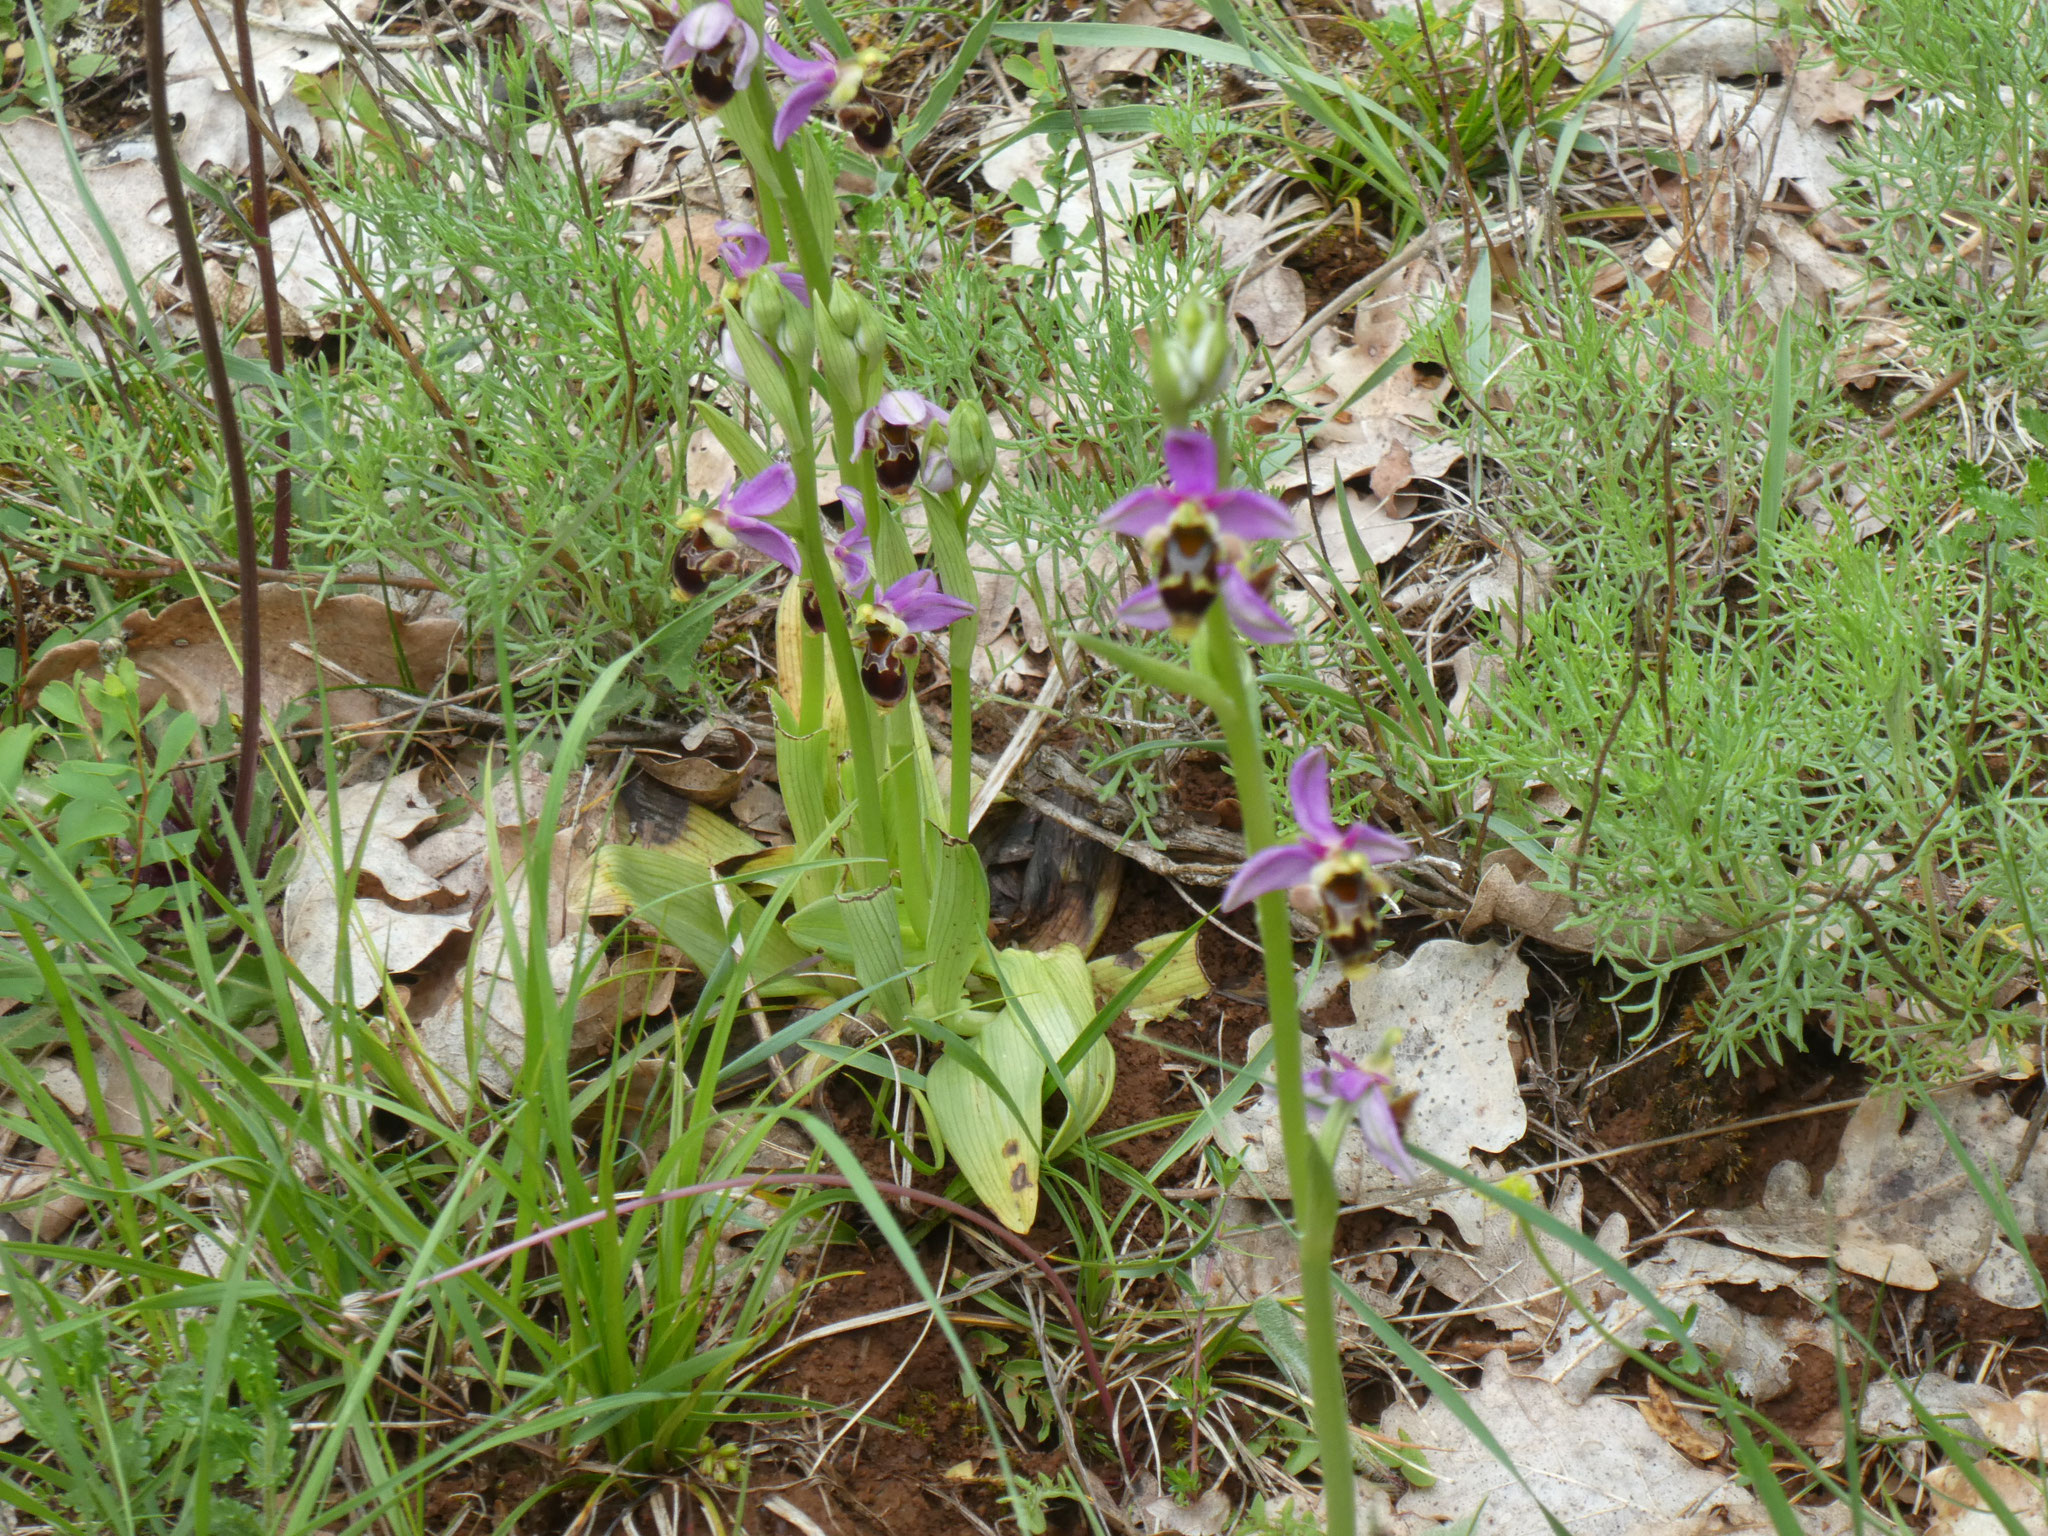 Ophrys bécasse scolopax